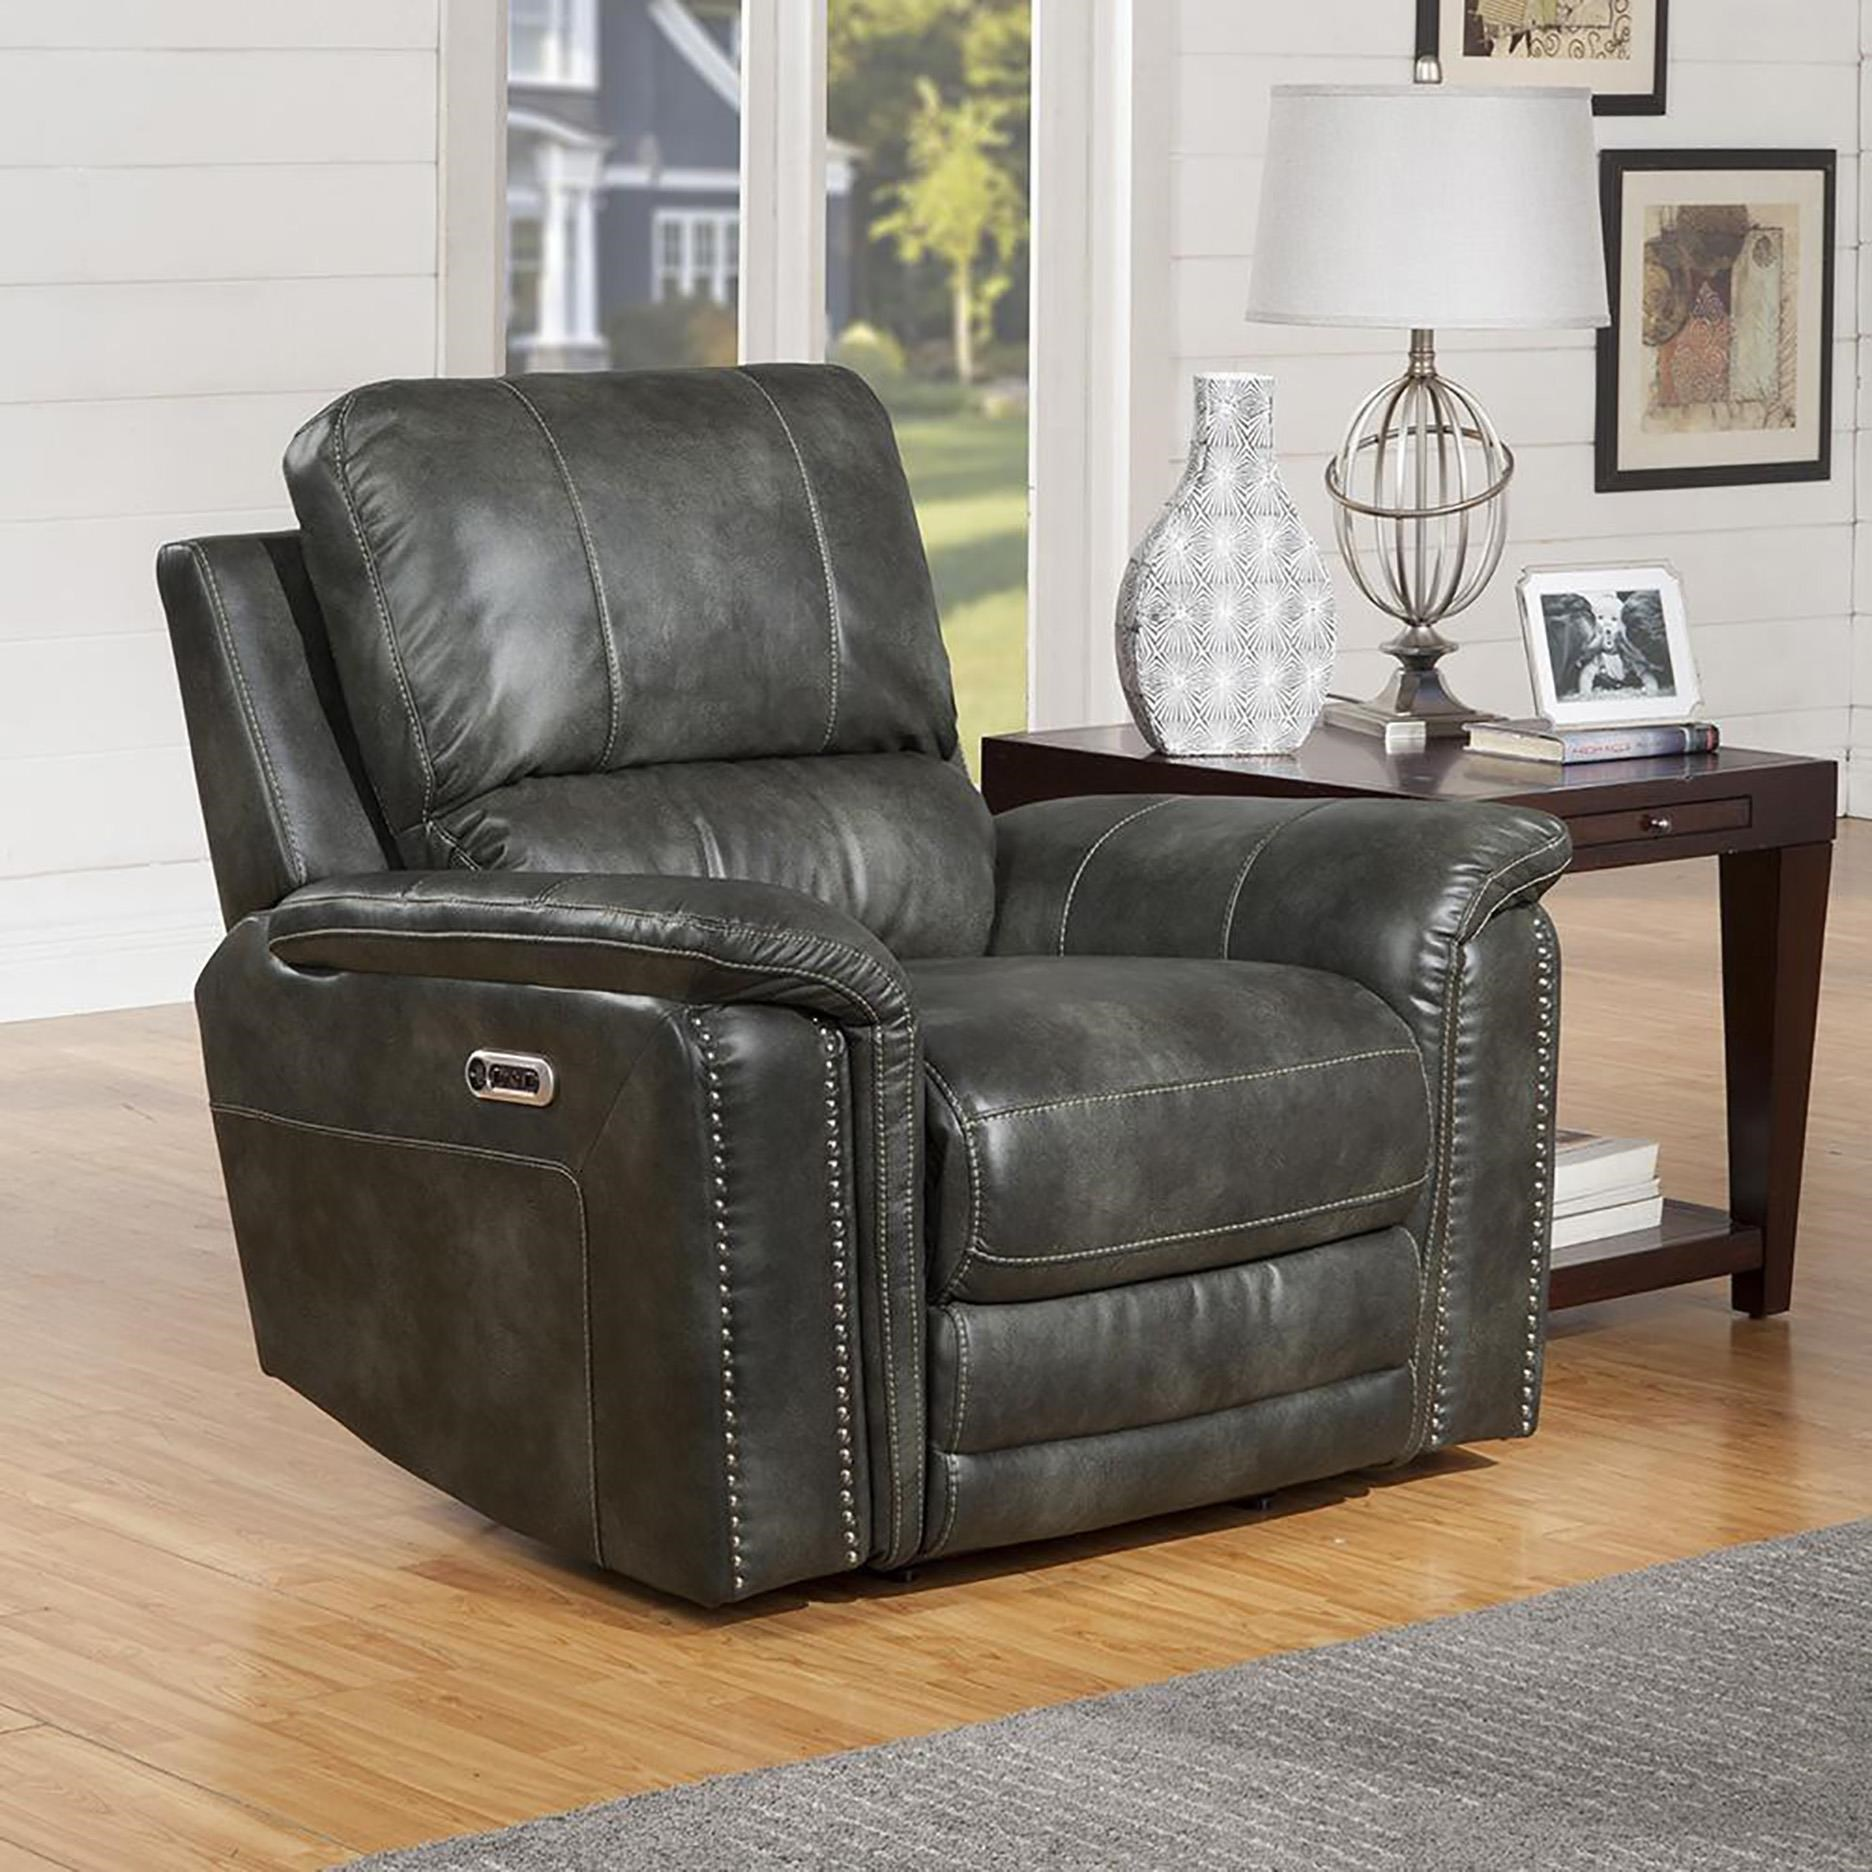 Belize Recliner Power With Usb And Power Headrest by Parker House at Johnny Janosik